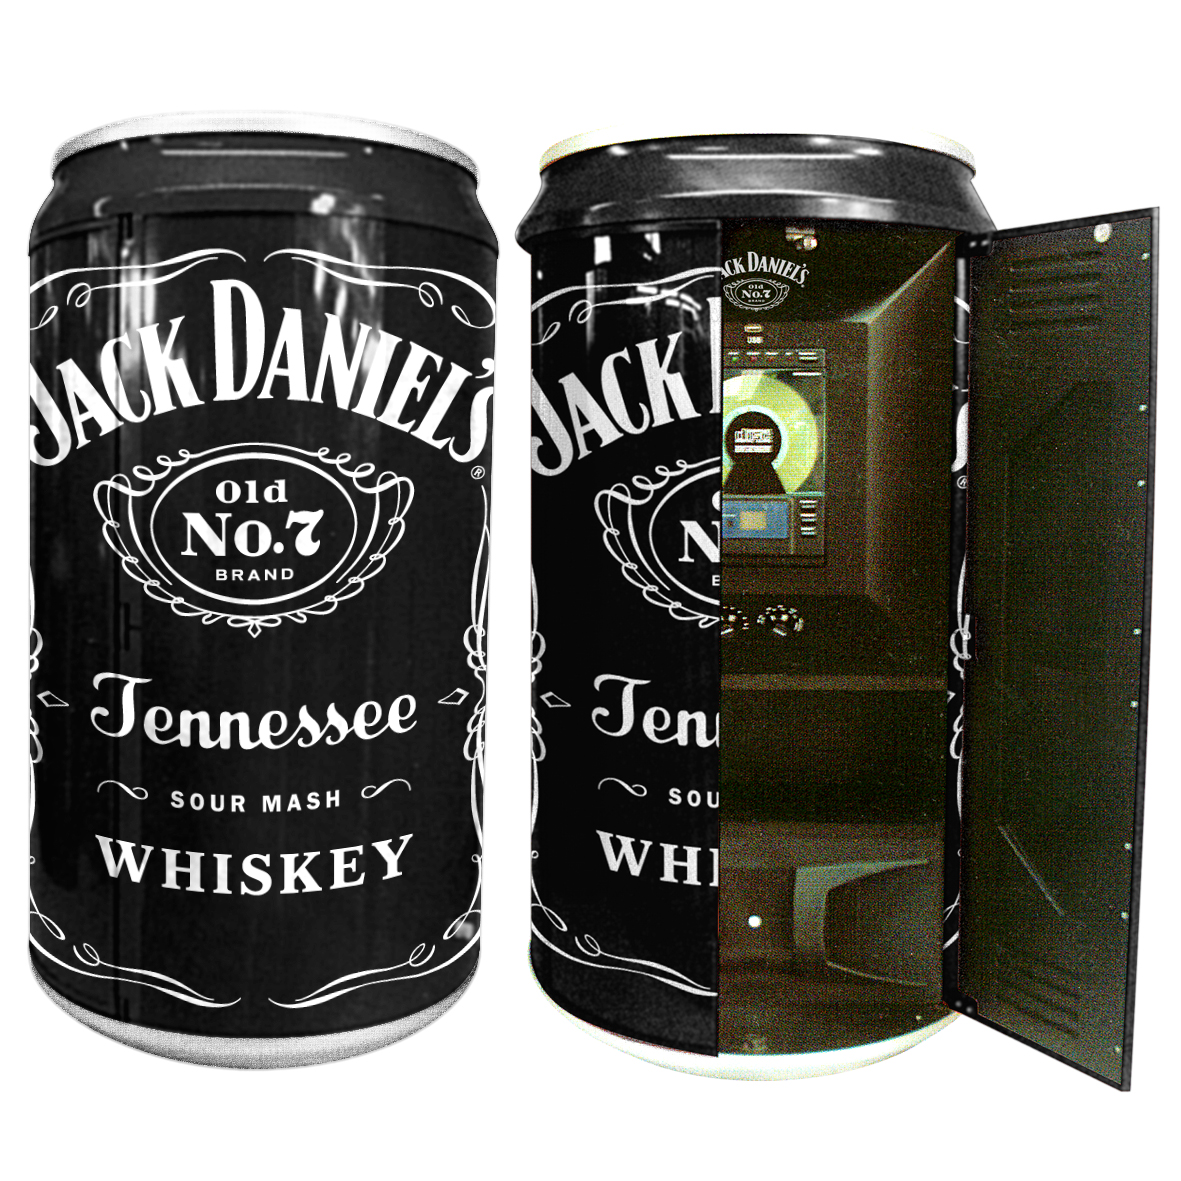 Jack Daniels Images Big Can Stereo JD462C Mybottleshop1 HD Wallpaper And Background Photos